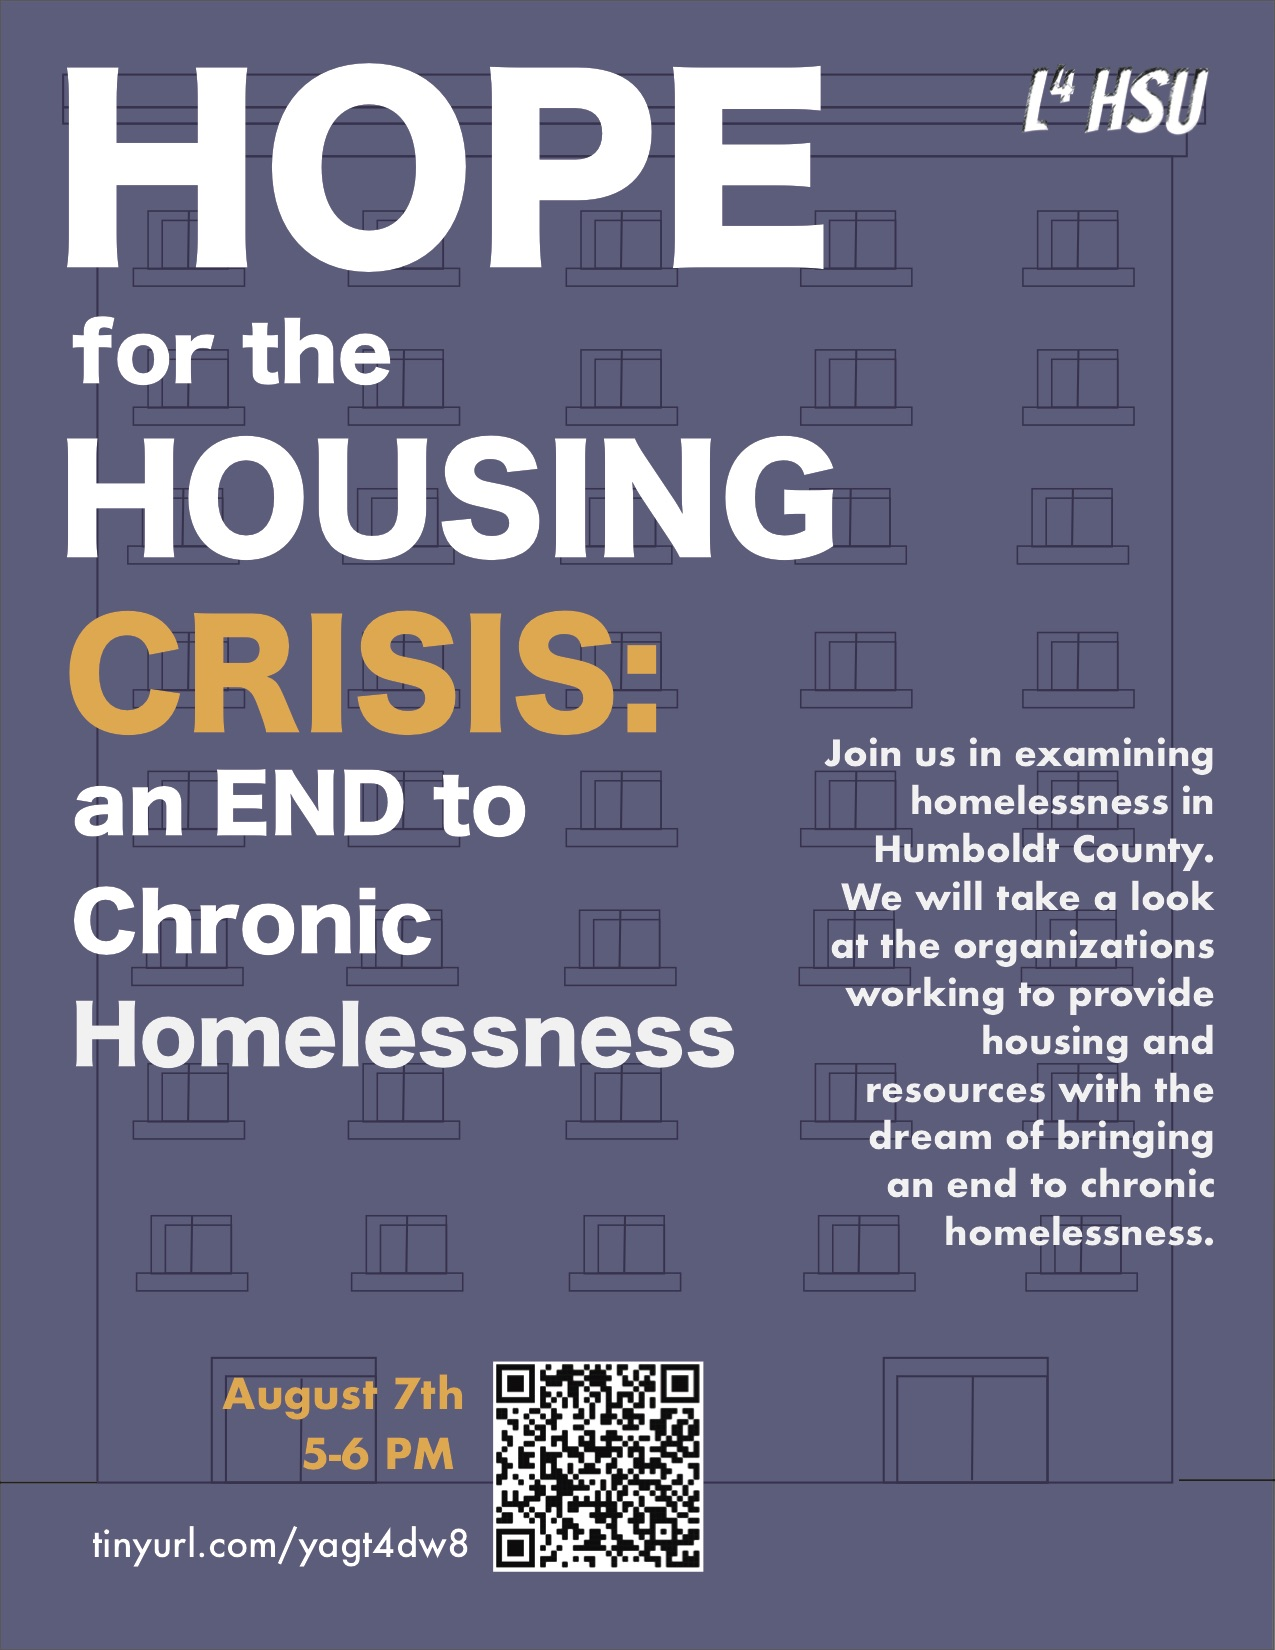 Hope for the Housing Crisis: An End to Chronic Homelessness